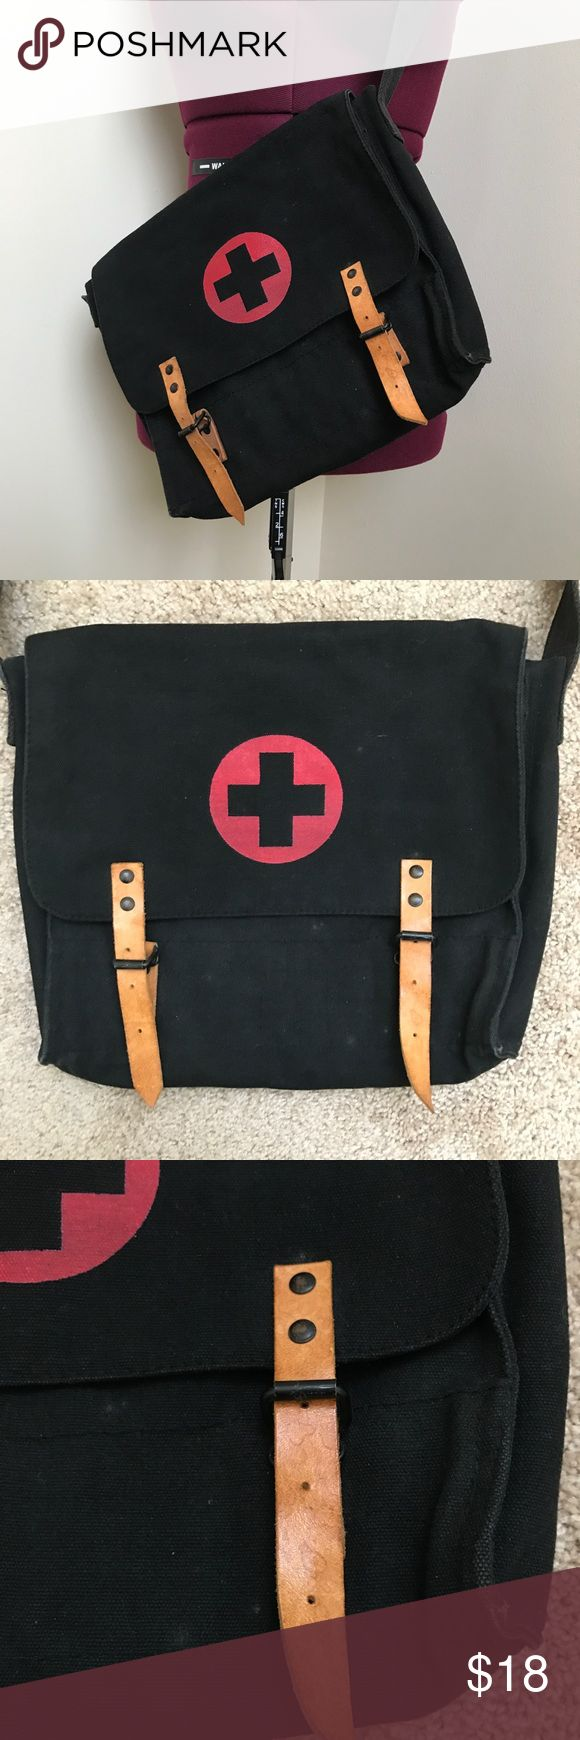 Vintage Military Medic bag Personally purchased this bag at an Army surplus store about 15 years ago. Used as an everyday bag and to keep books in for school. Some wear but plenty of life left! Bags